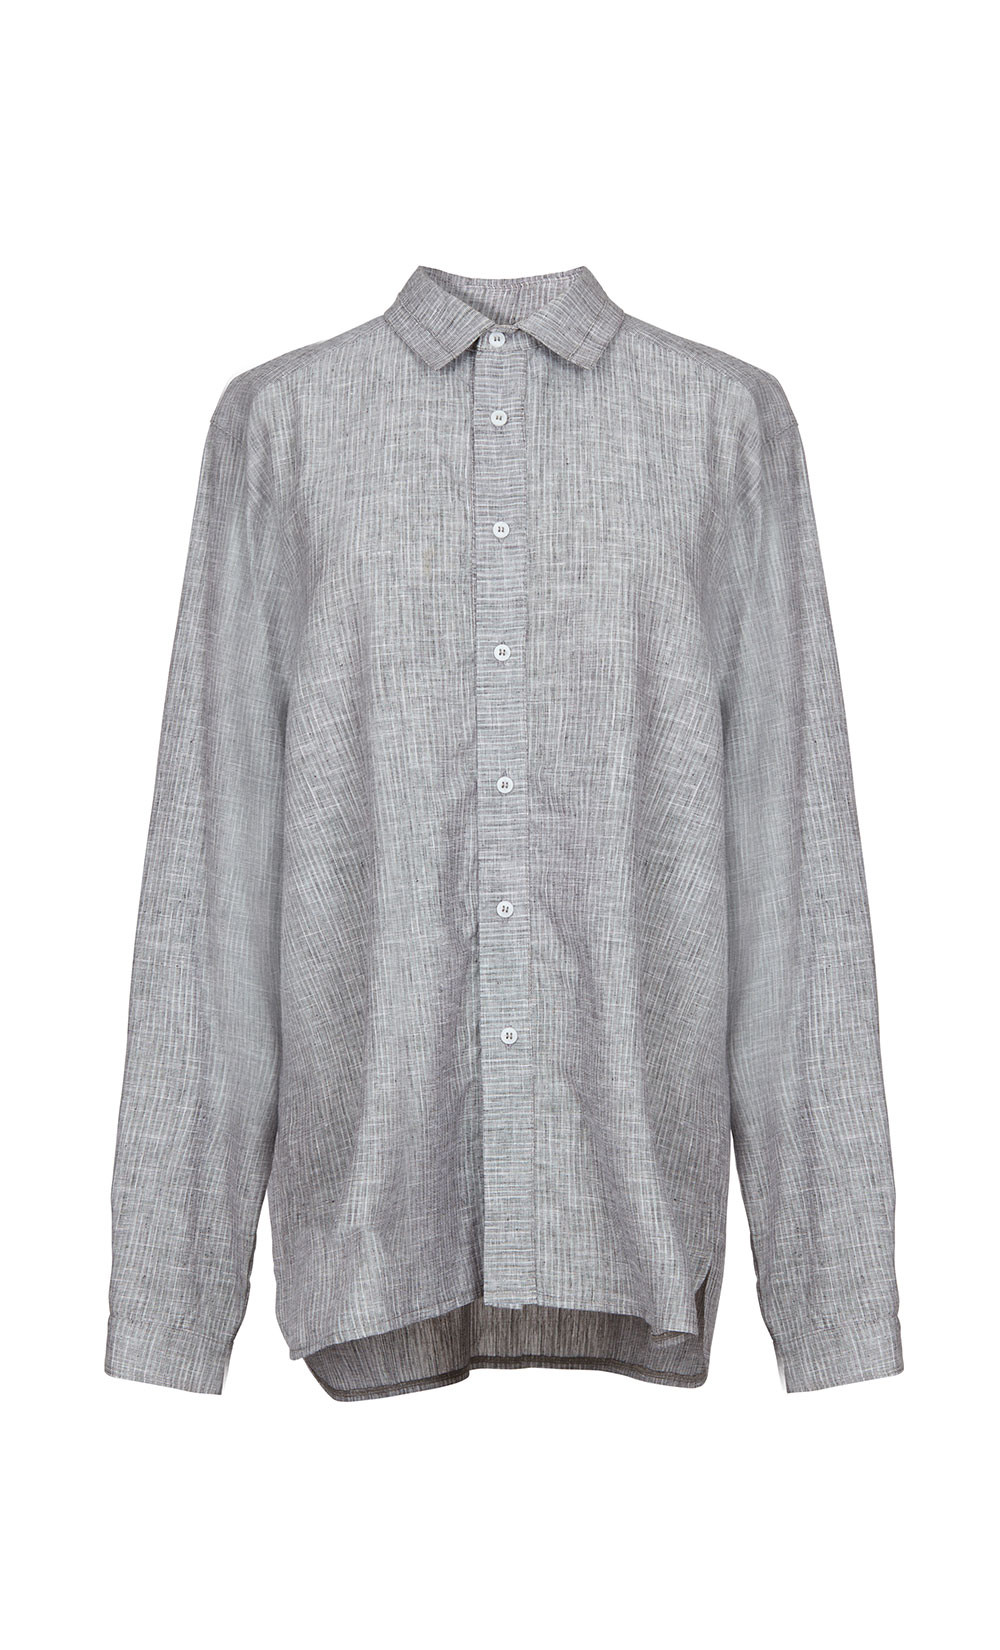 Zoro Linen Cotton Shirt